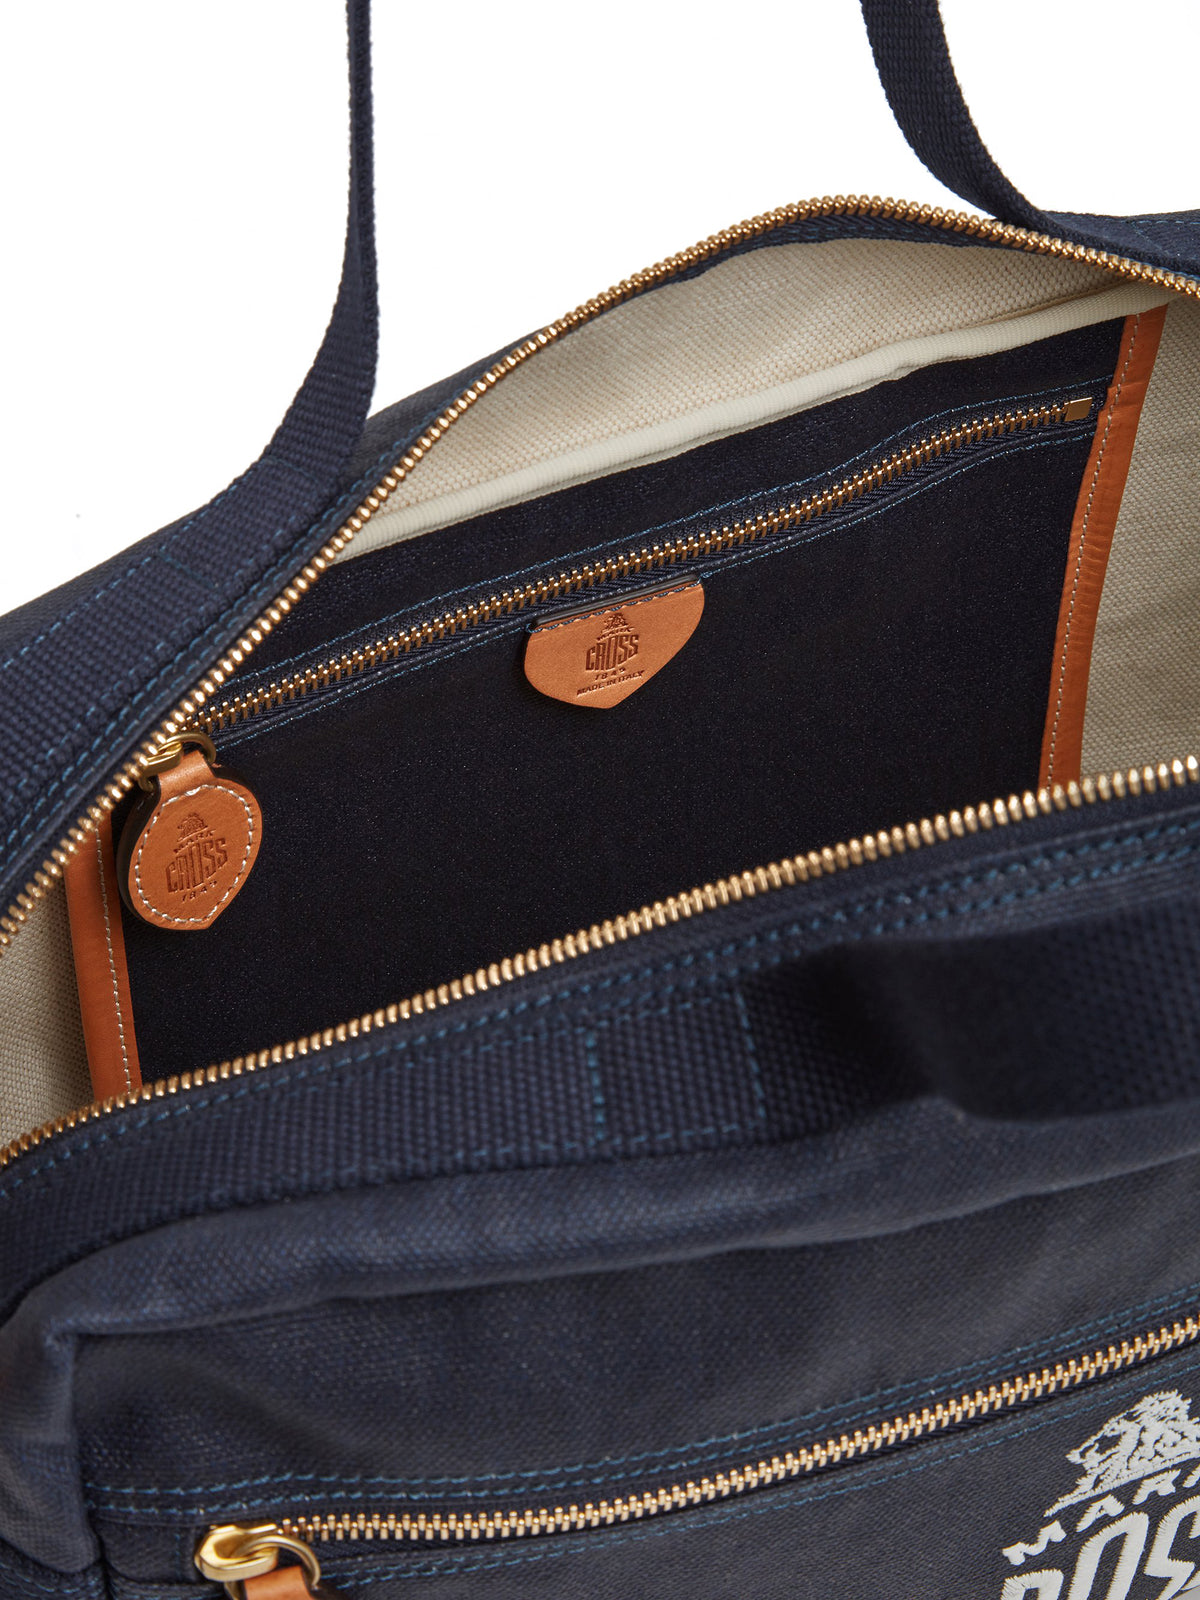 Mark Cross Weatherbird Canvas Messenger Bag Canvas Navy Interior